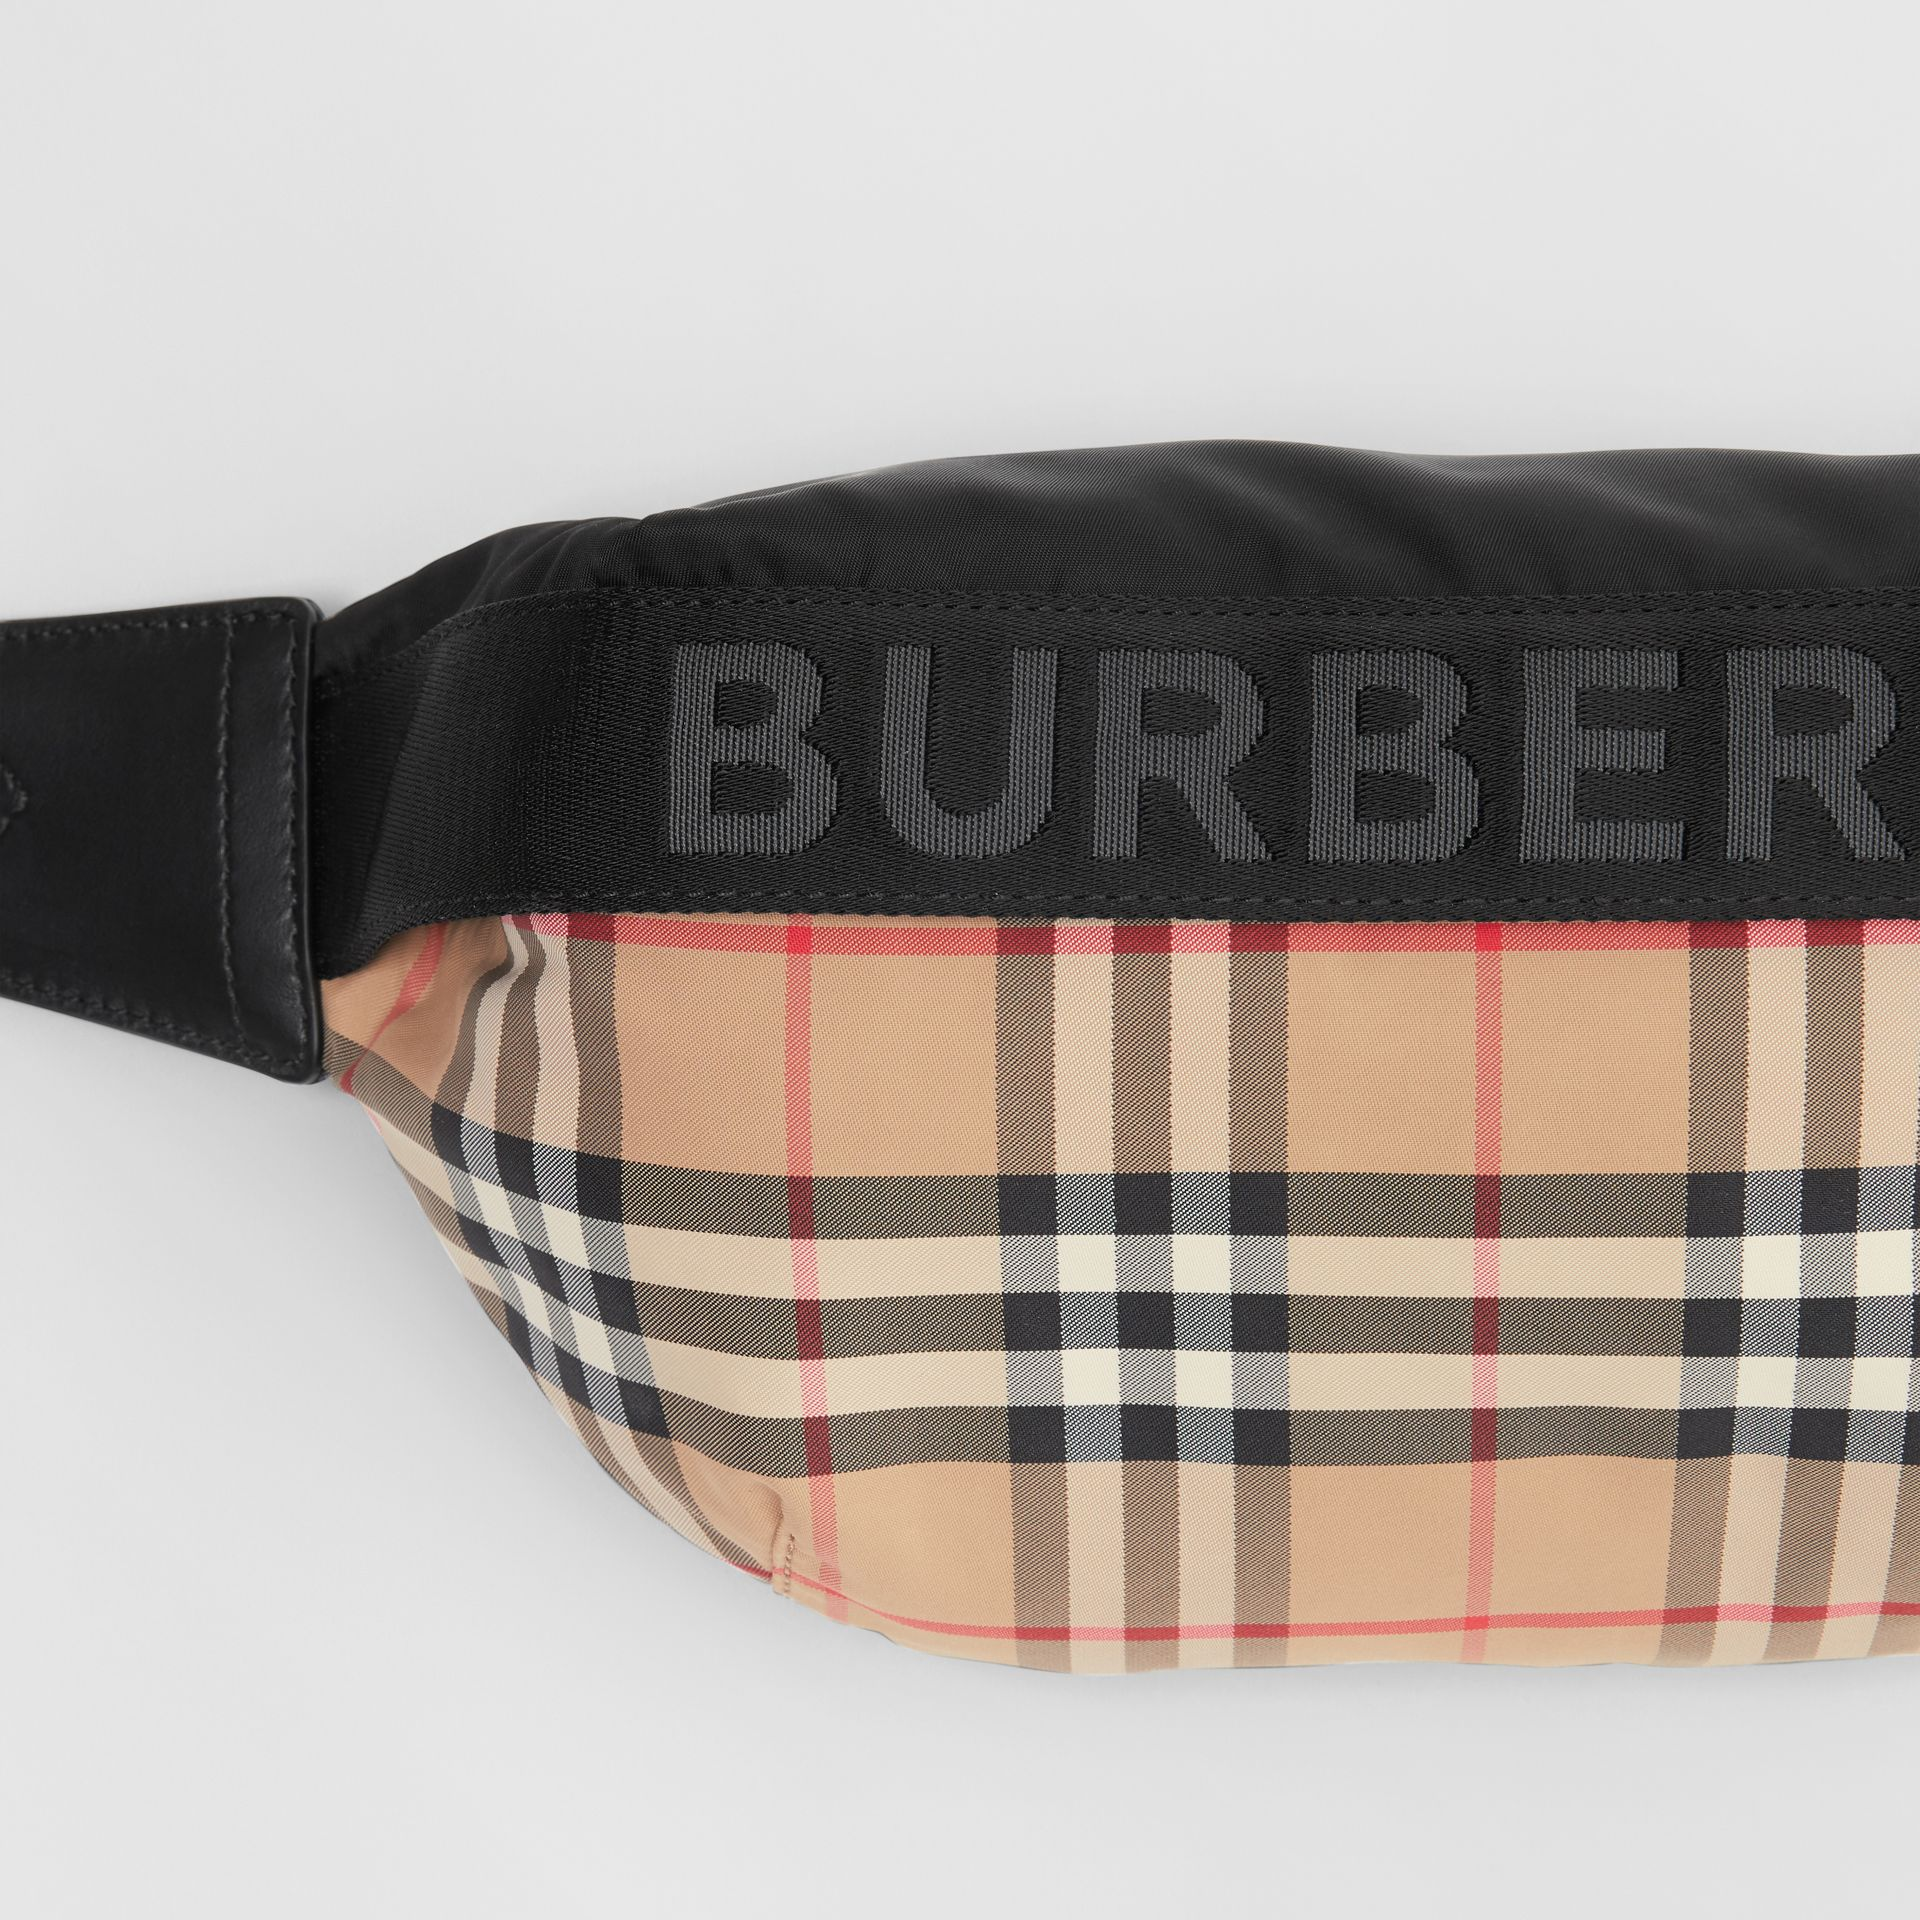 Medium Vintage Check Bum Bag in Archive Beige - Women | Burberry - gallery image 1